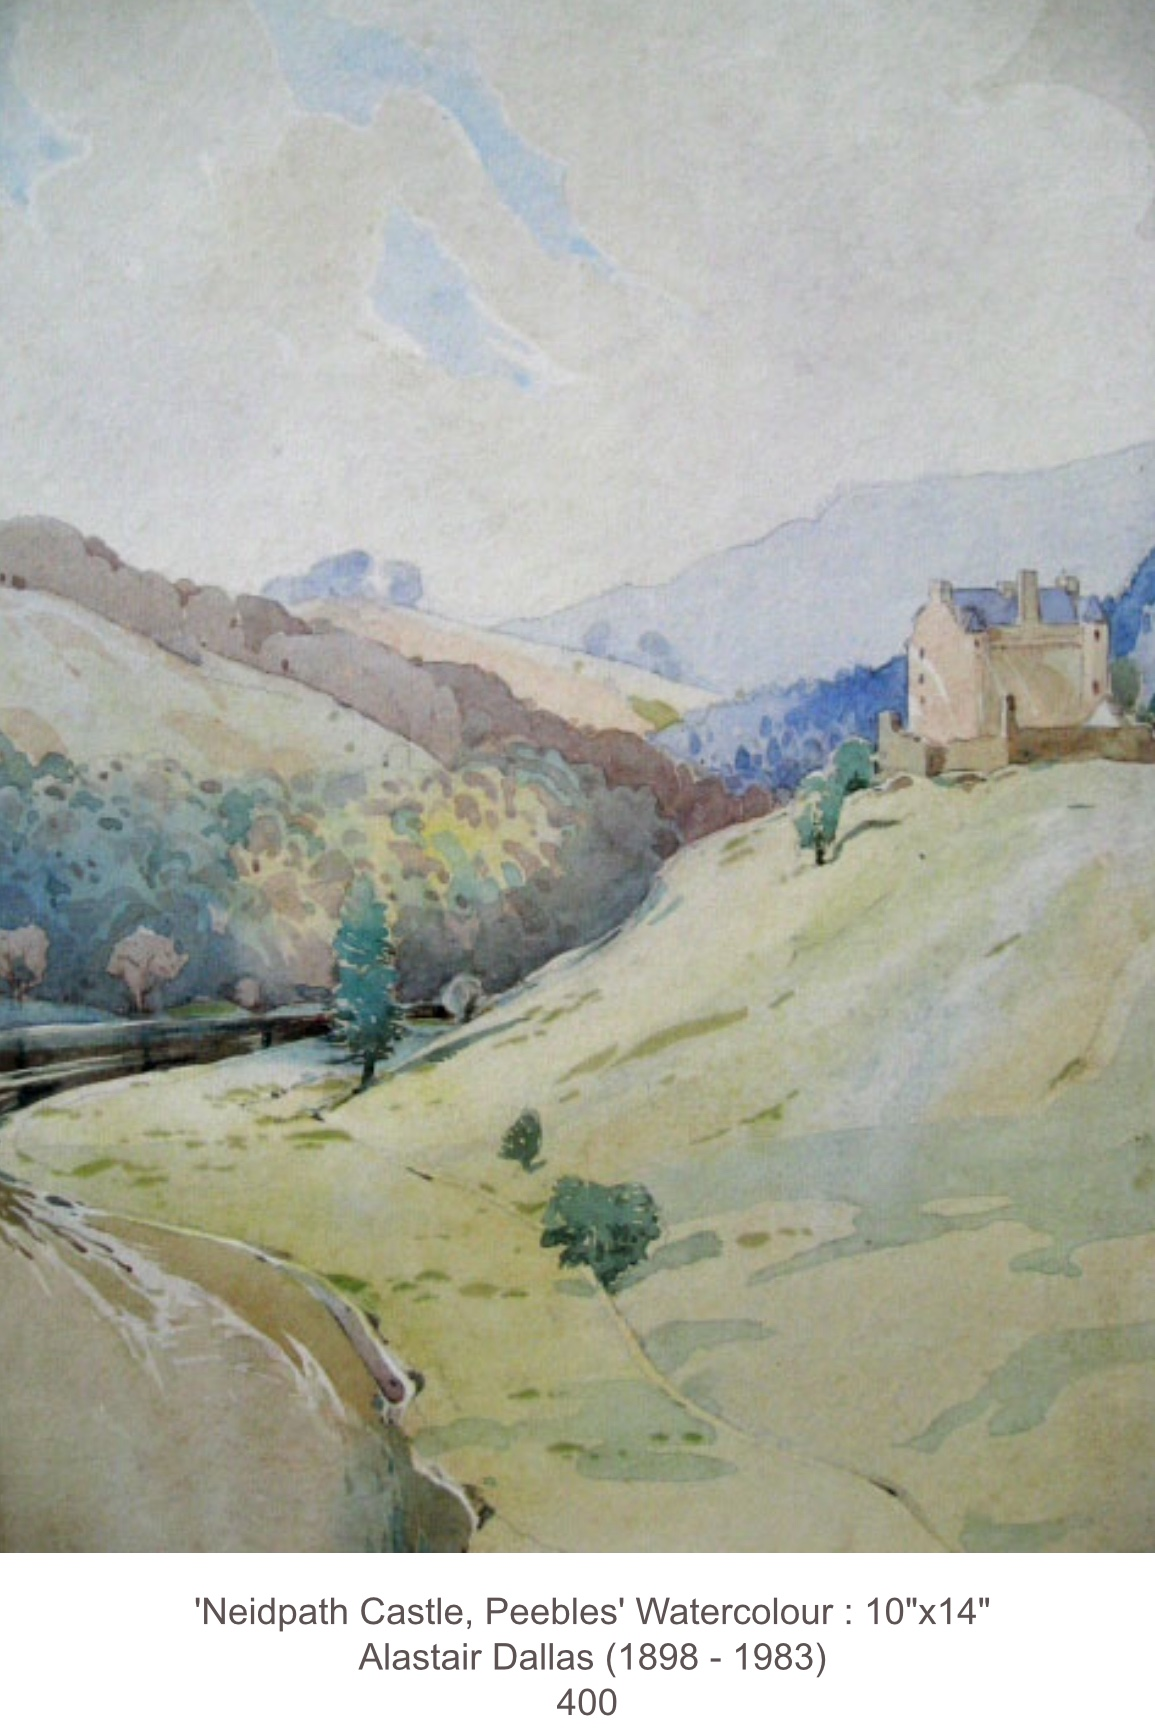 Alastair Dallas 'Neidpath Castle, Peebles'